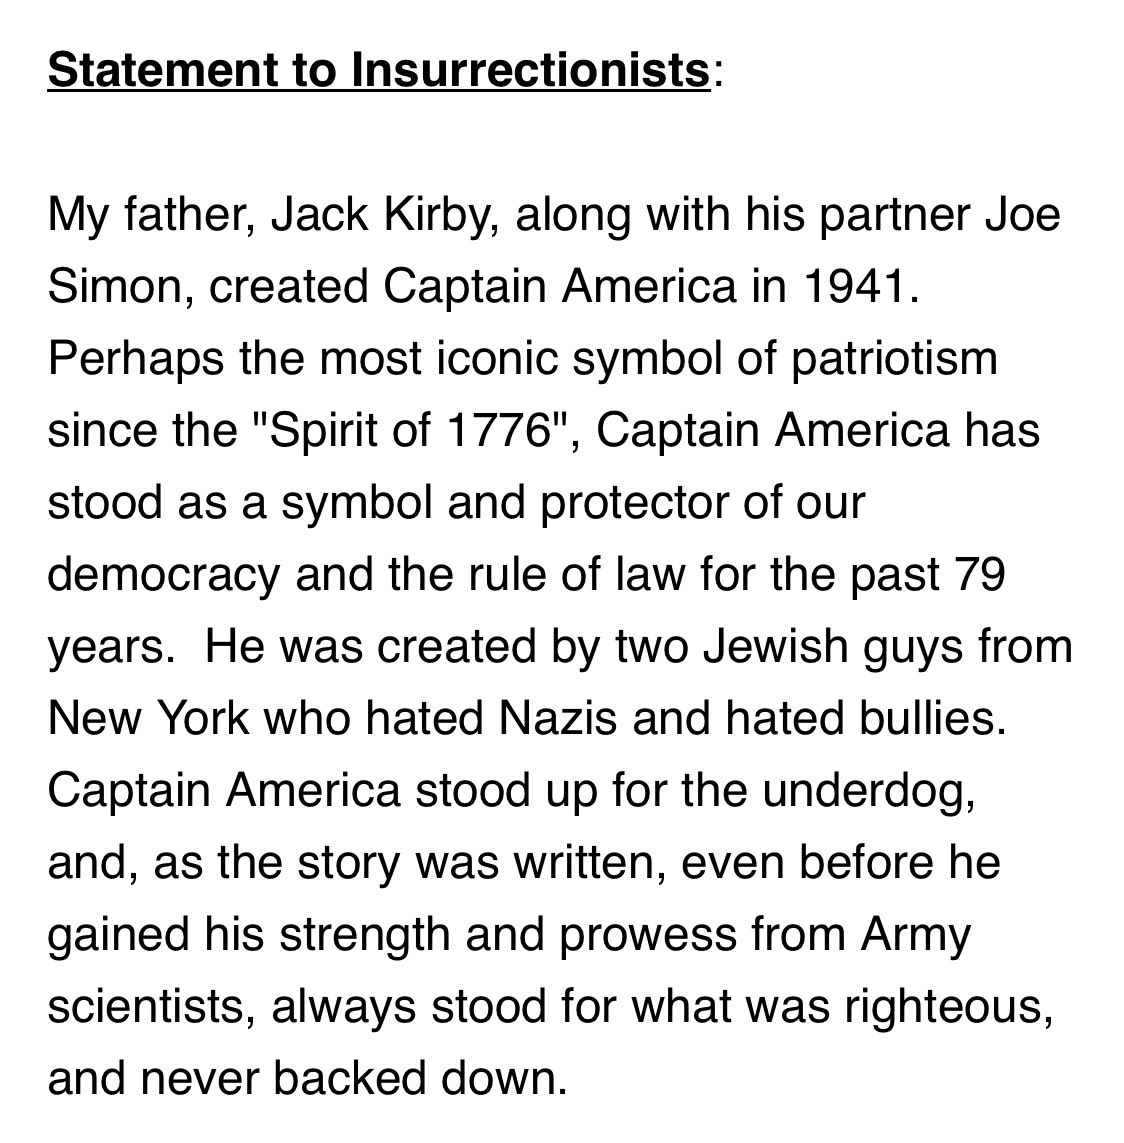 Neal Kirby, the son of Captain America co-creator Jack Kirby, was distressed to see some of the January 6 terrorists/rioters wearing shirts with versions of his dad's creation corrupted by the image of the outgoing president. His message to them: